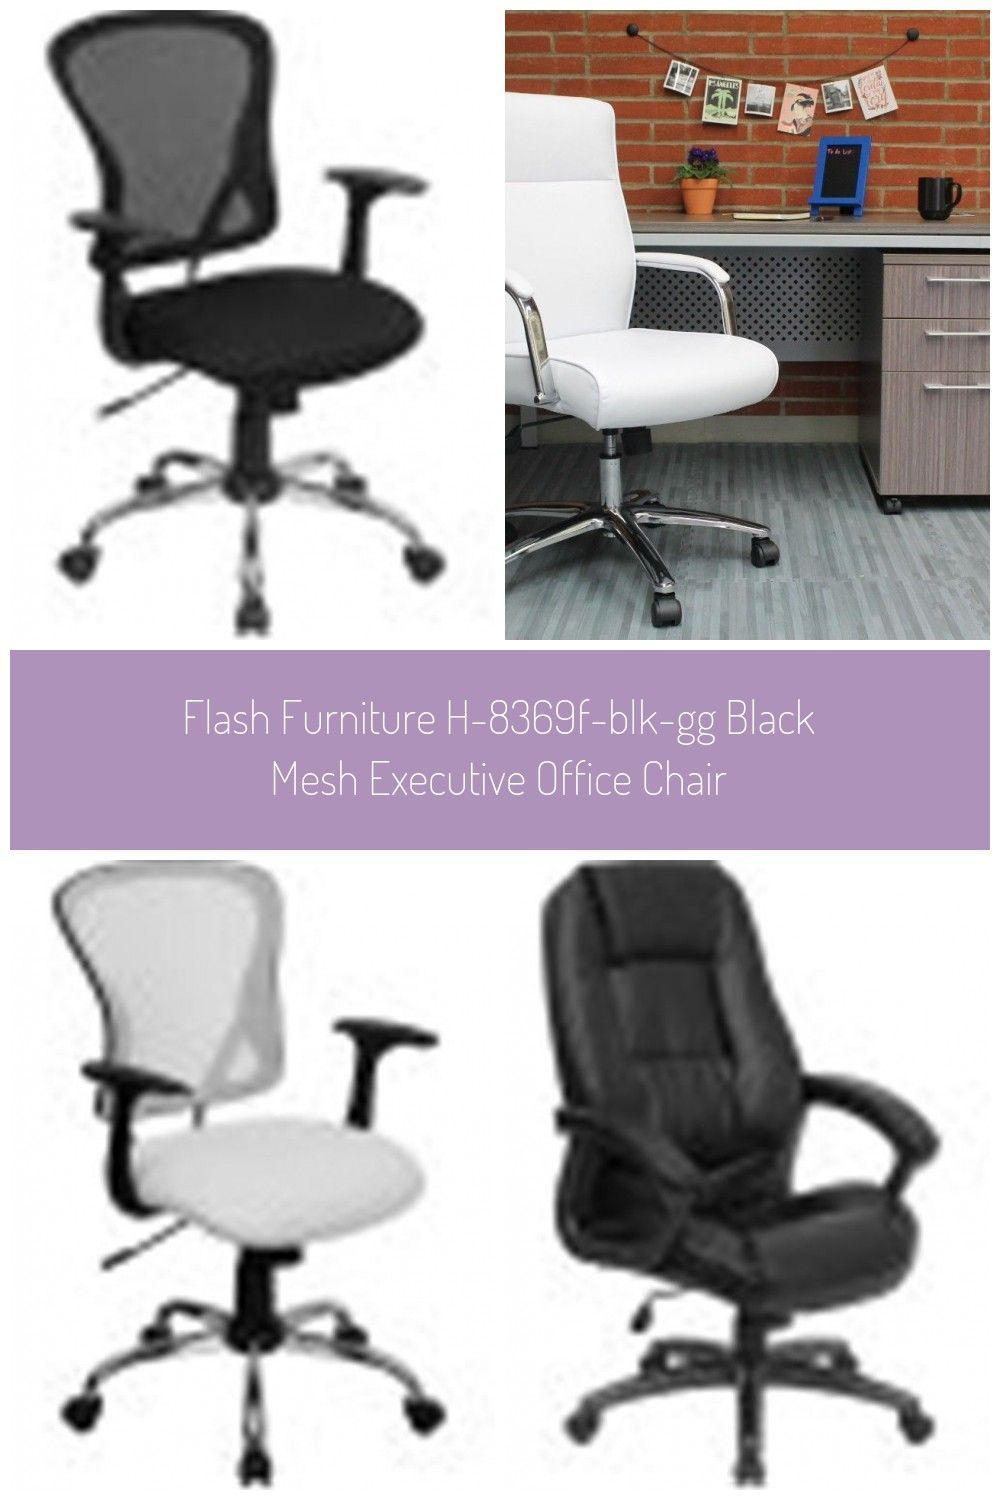 Flash Furniture H-8369F-BLK-GG Black Mesh Executive Office Chair #executive offi...,  #black ...,  #Black #Chair #Executive #executiveOfficeroom #Flash #Furniture #H8369FBLKGG #Mesh #offi #Office